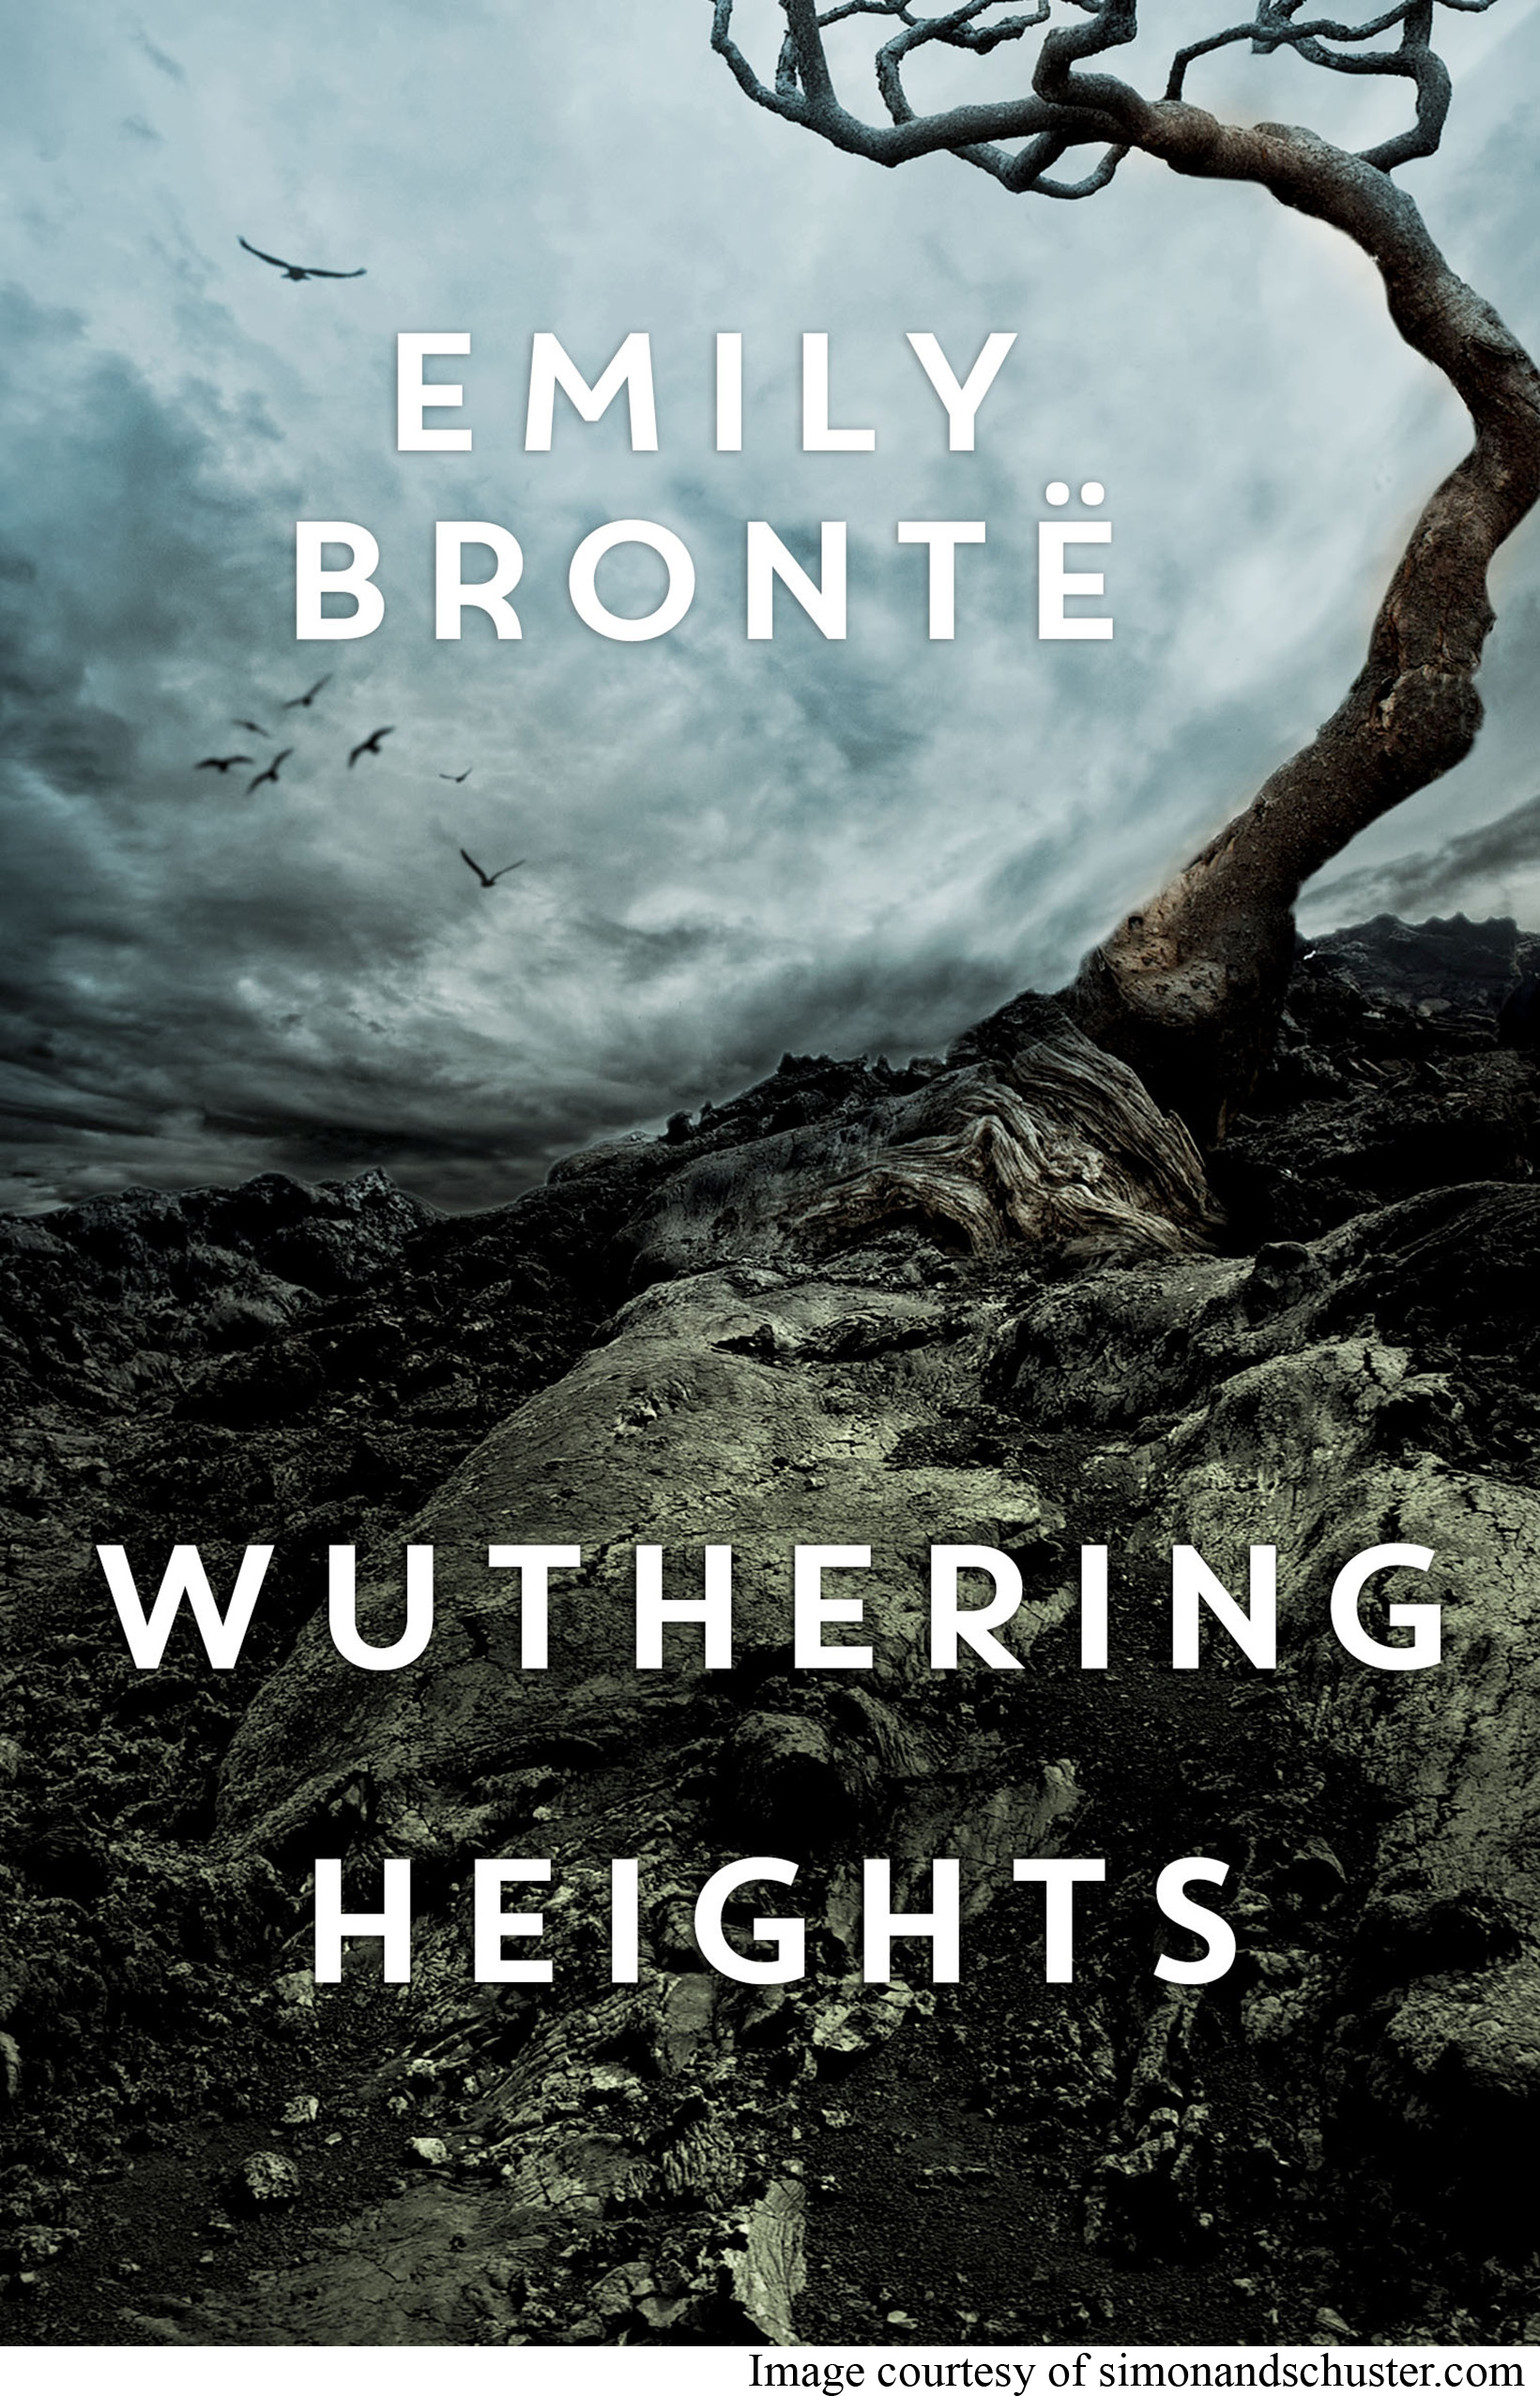 a summary of wuthering heights a novel by charlotte bronte Ver vídeo  emily brontë is best known for authoring the novel wuthering heights she was the sister of charlotte and anne brontë, also famous authors.